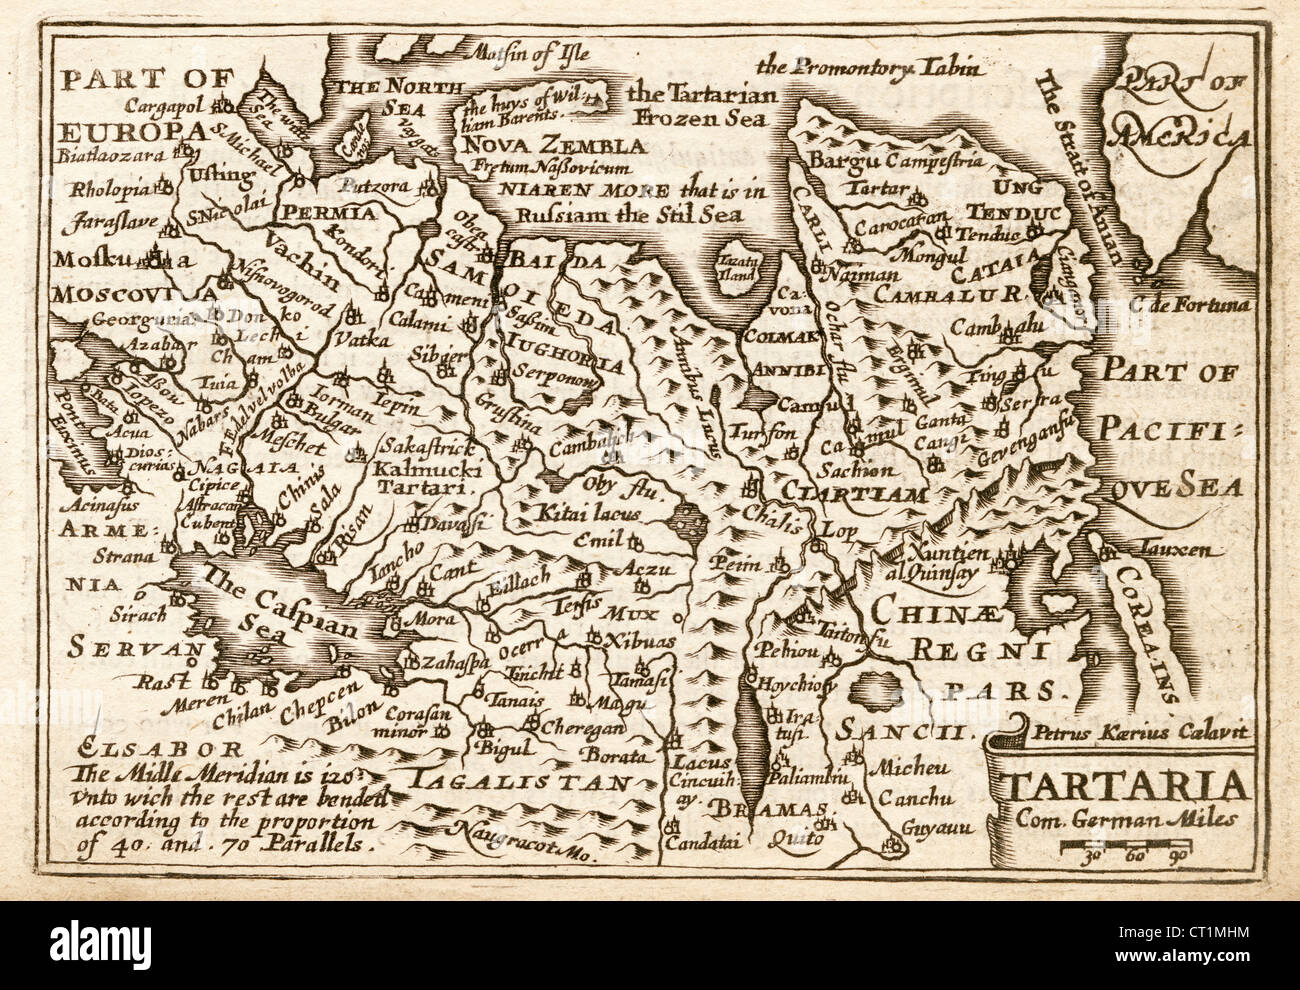 Map of The Tartaria (Tartary) by Petrus Kaerius 1646 from John Speed Prospect of the most Famous Parts of the World - Stock Image